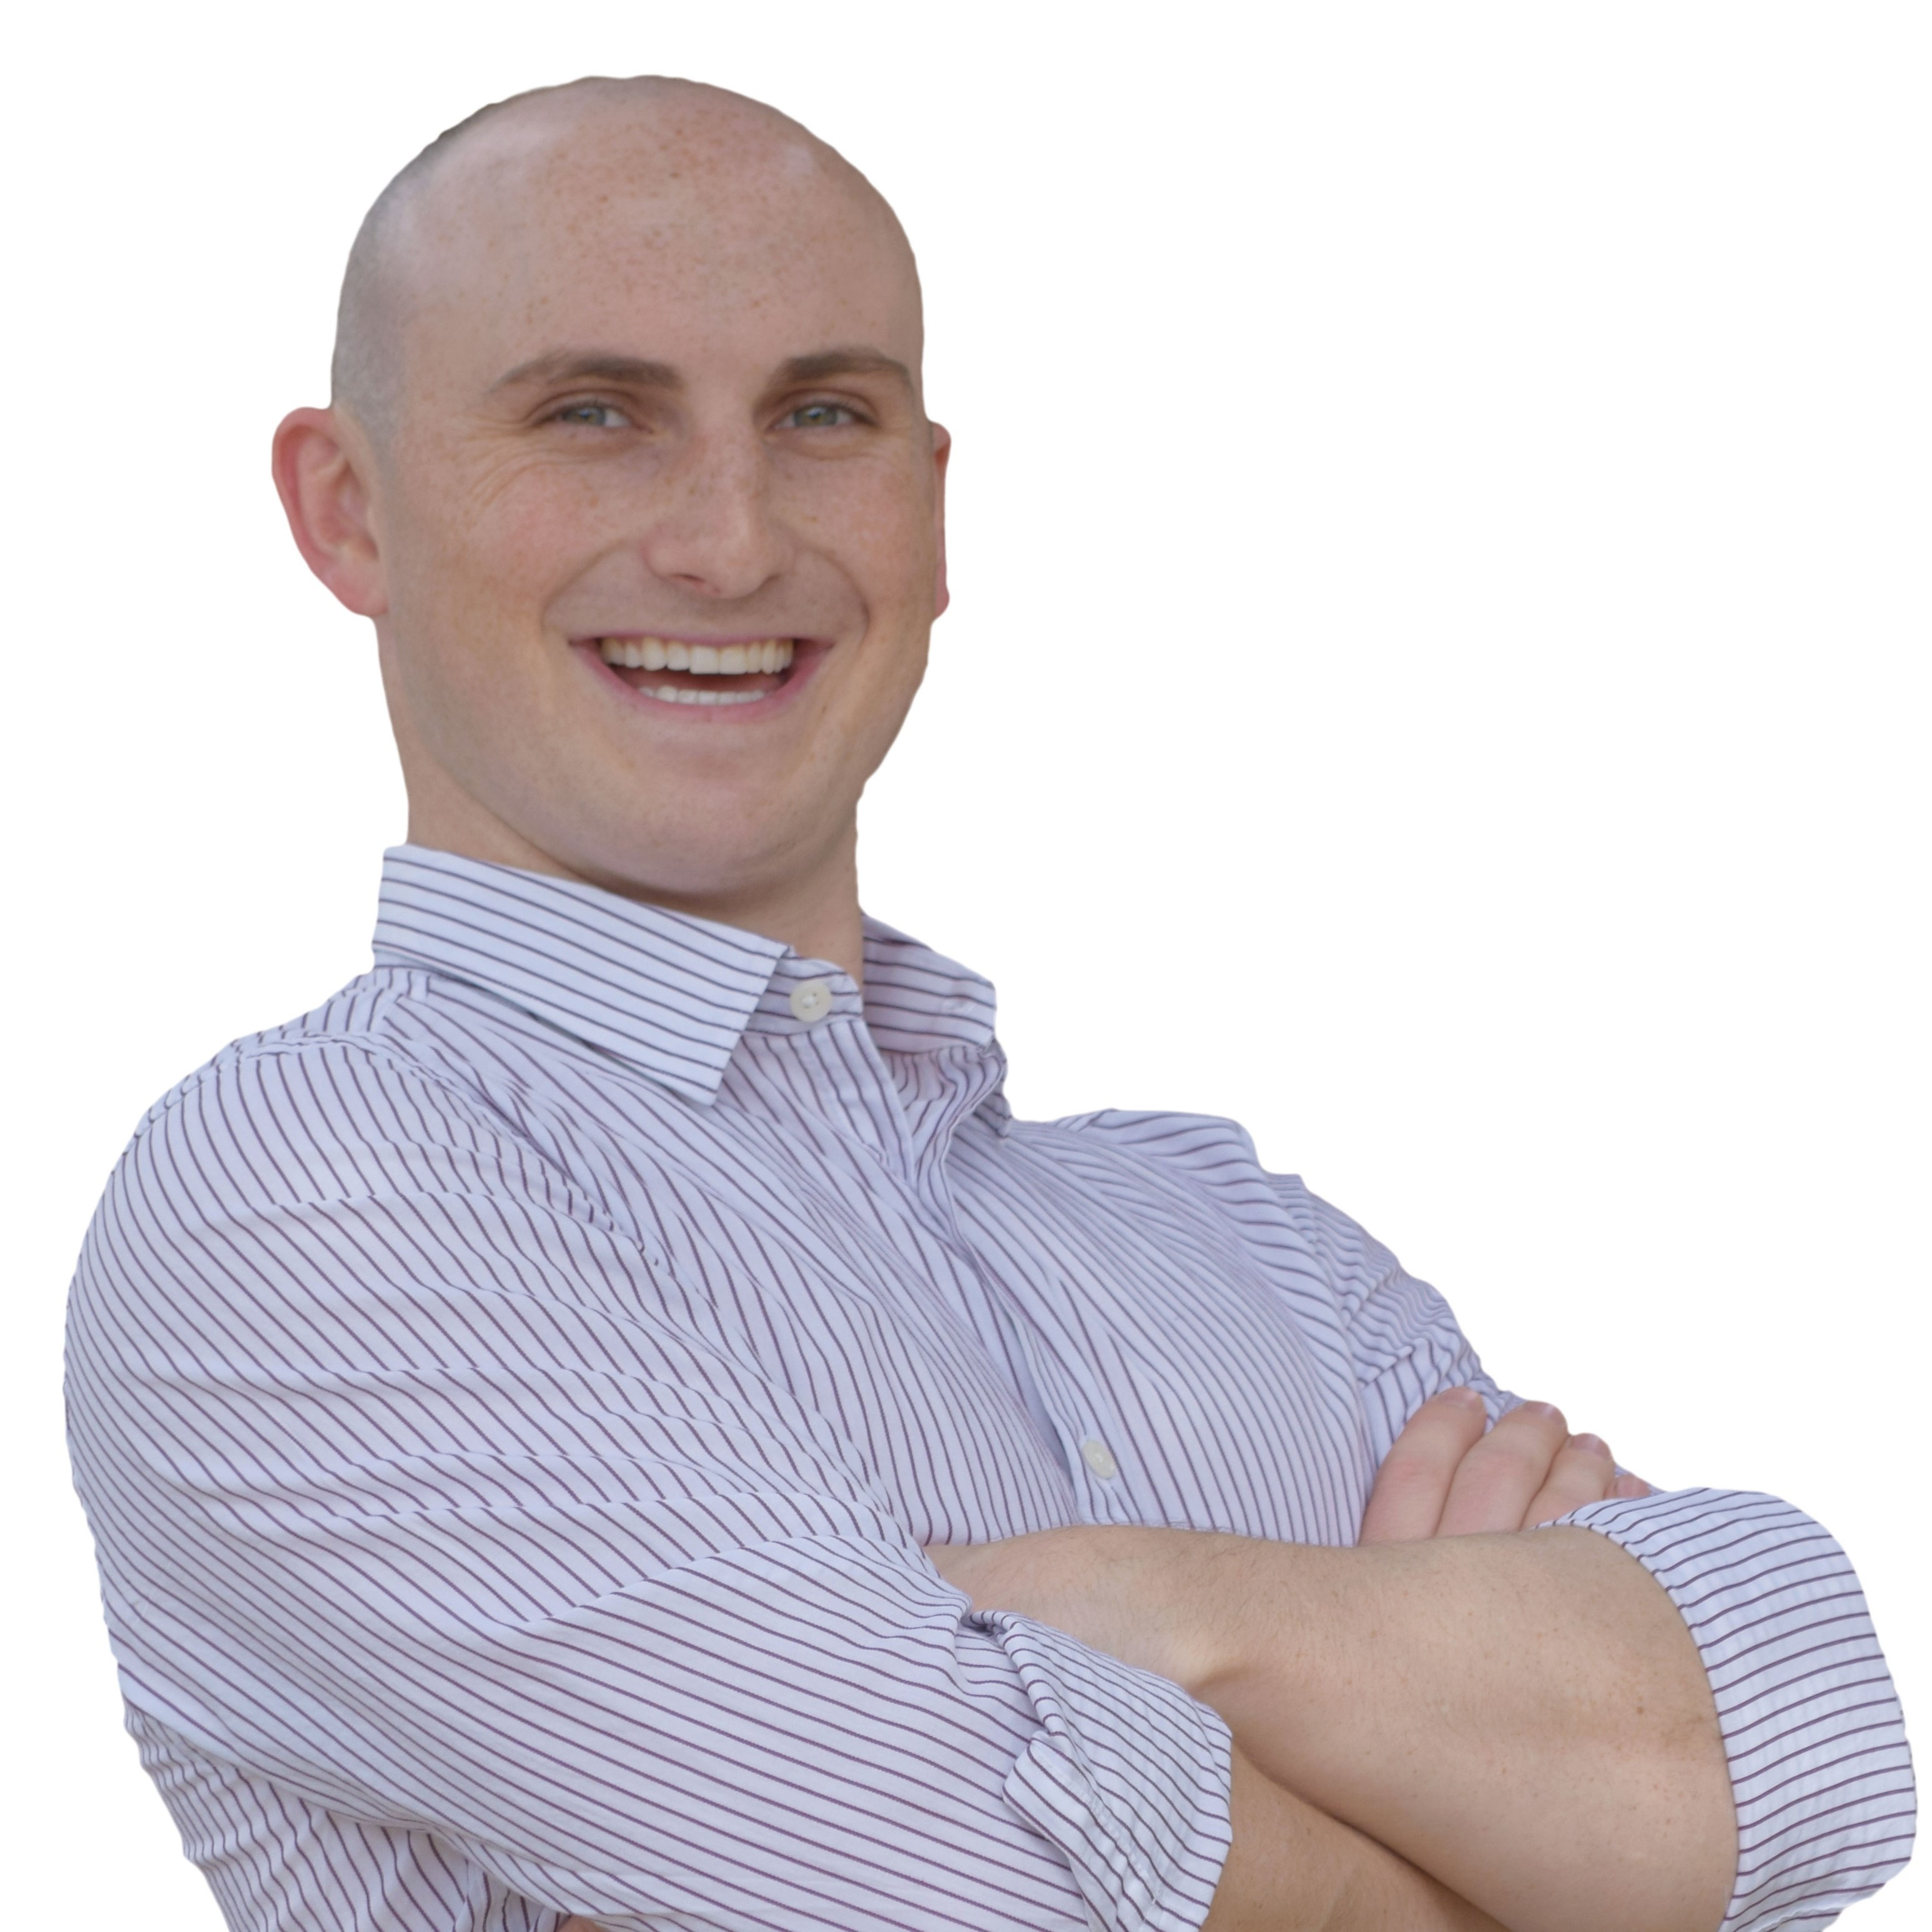 nathan-hirsch-is-a-30-year-old-10-year-entrepreneur-and-expert-in-remote-hiring-and-ecommerce-ep2523_thumbnail.png